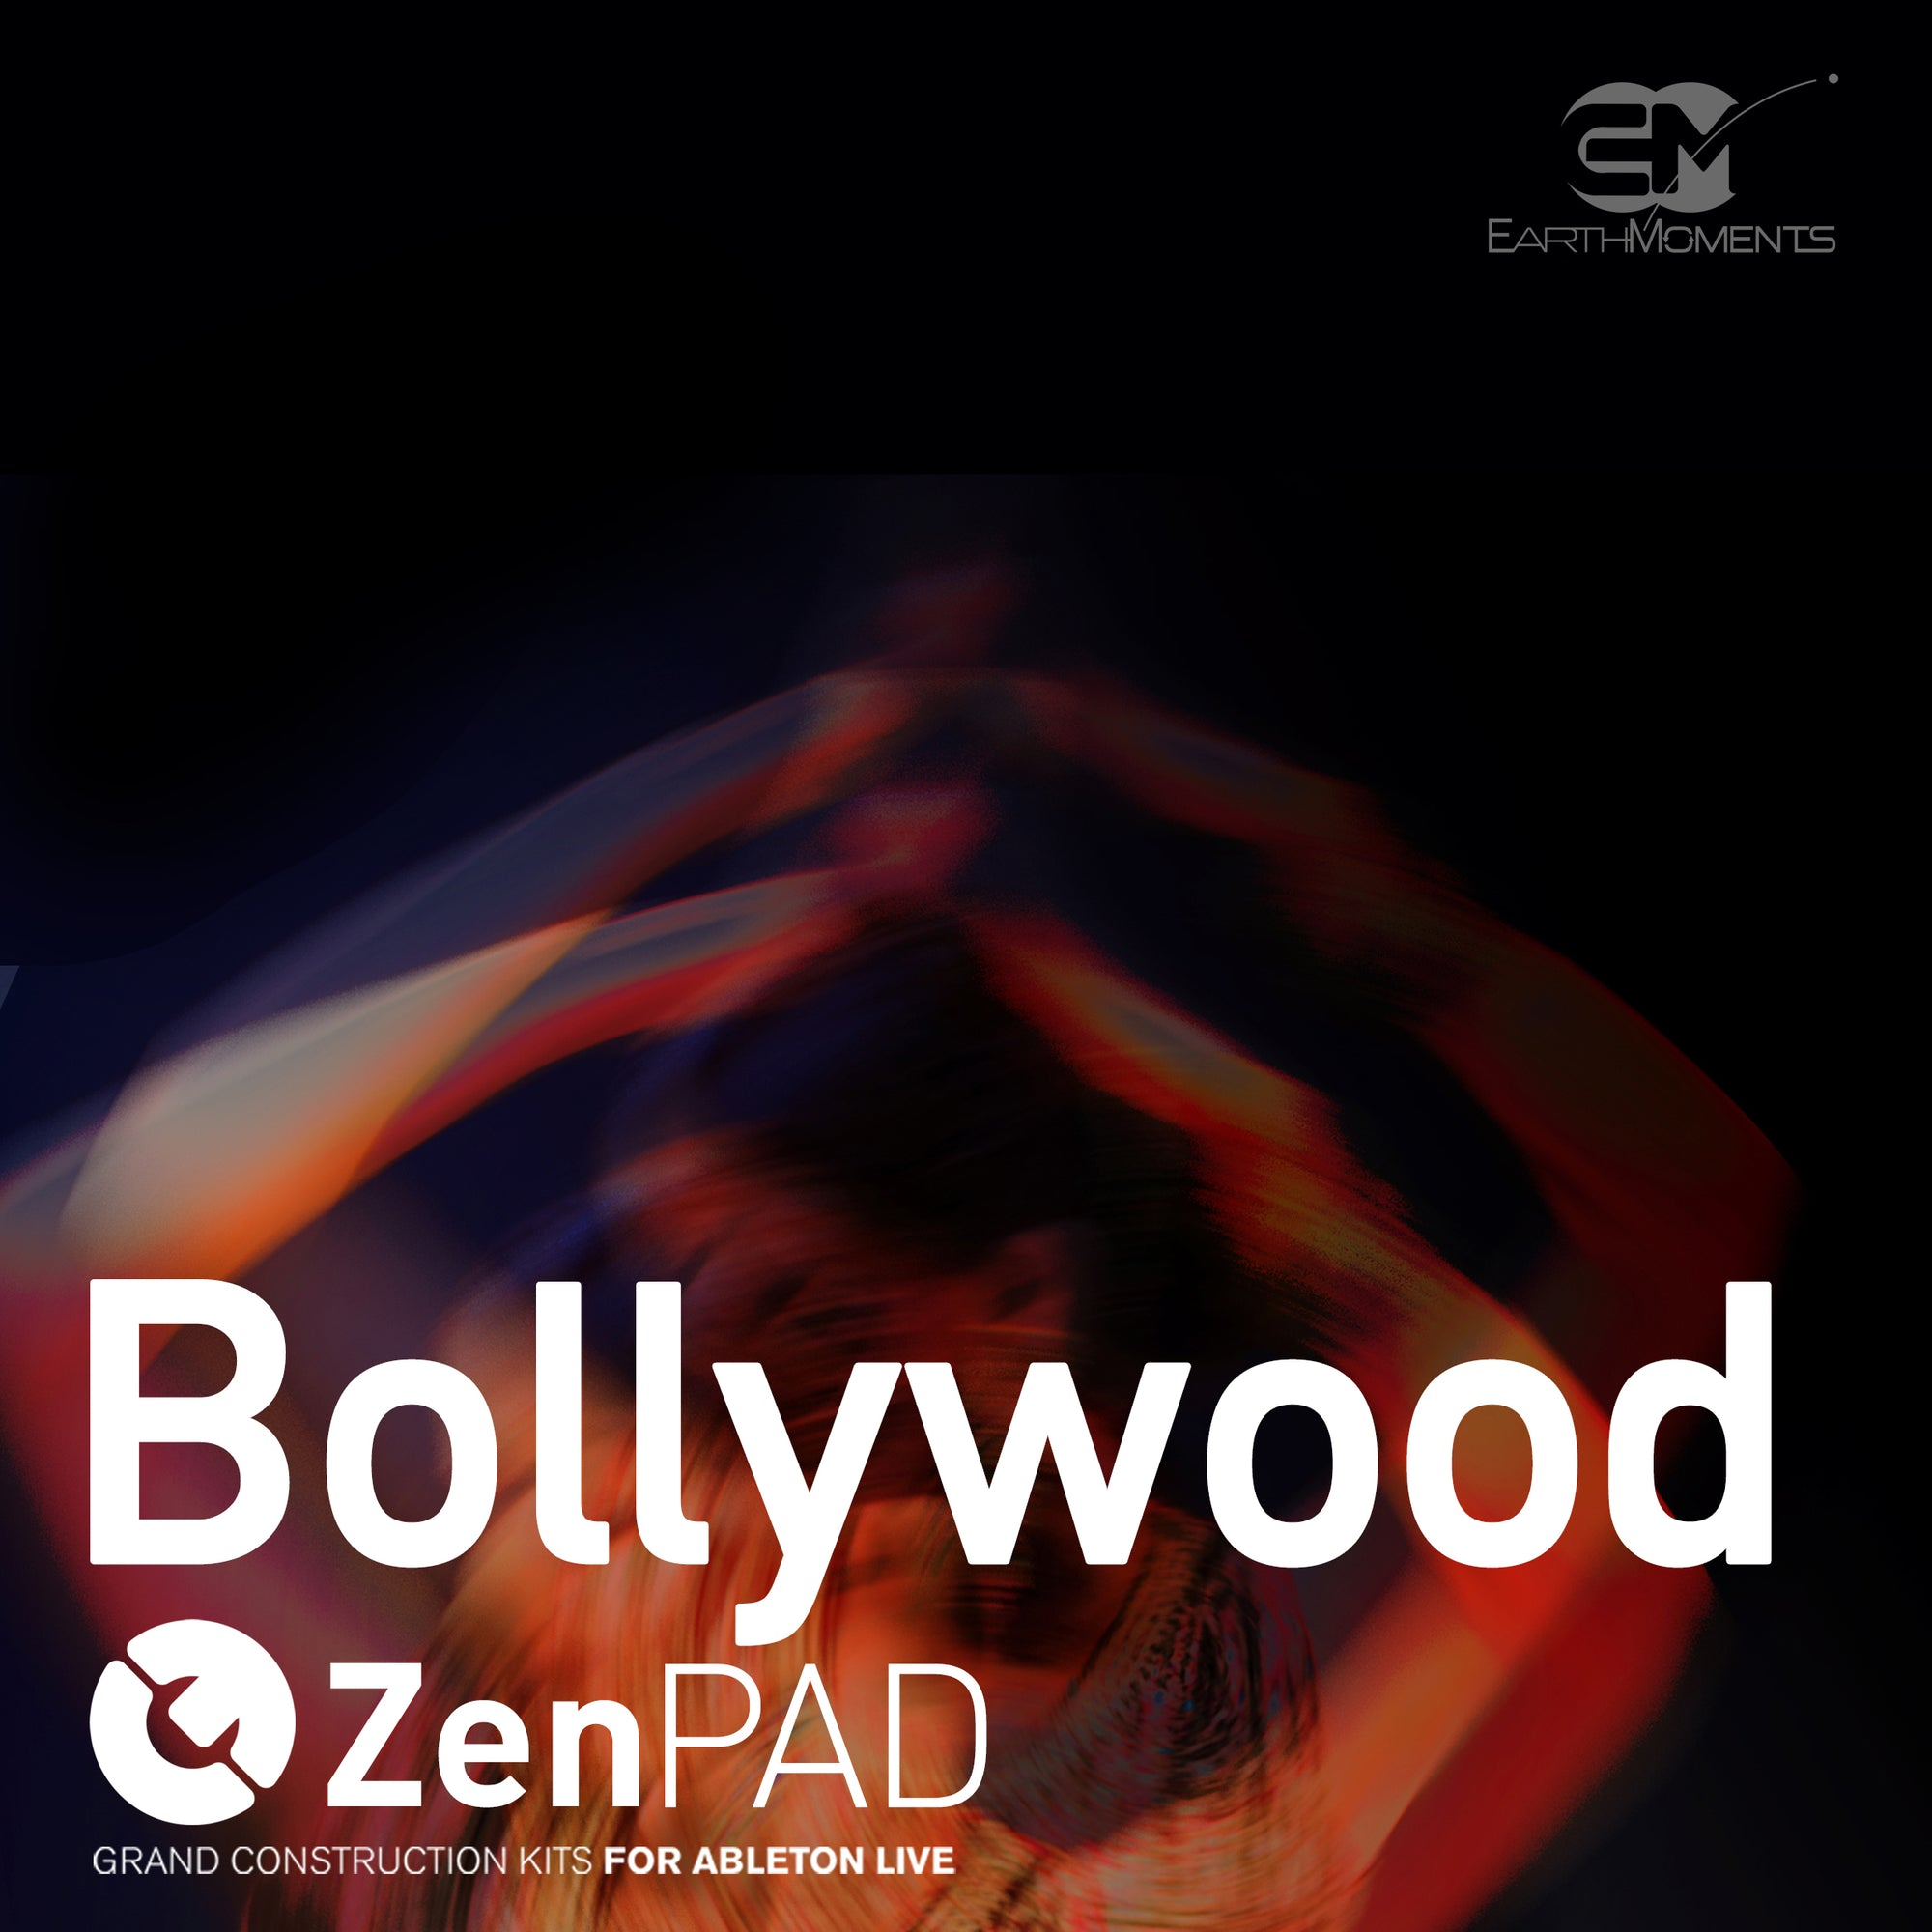 ZenPad Bollywood / Grand Construction Kit for Ableton Live